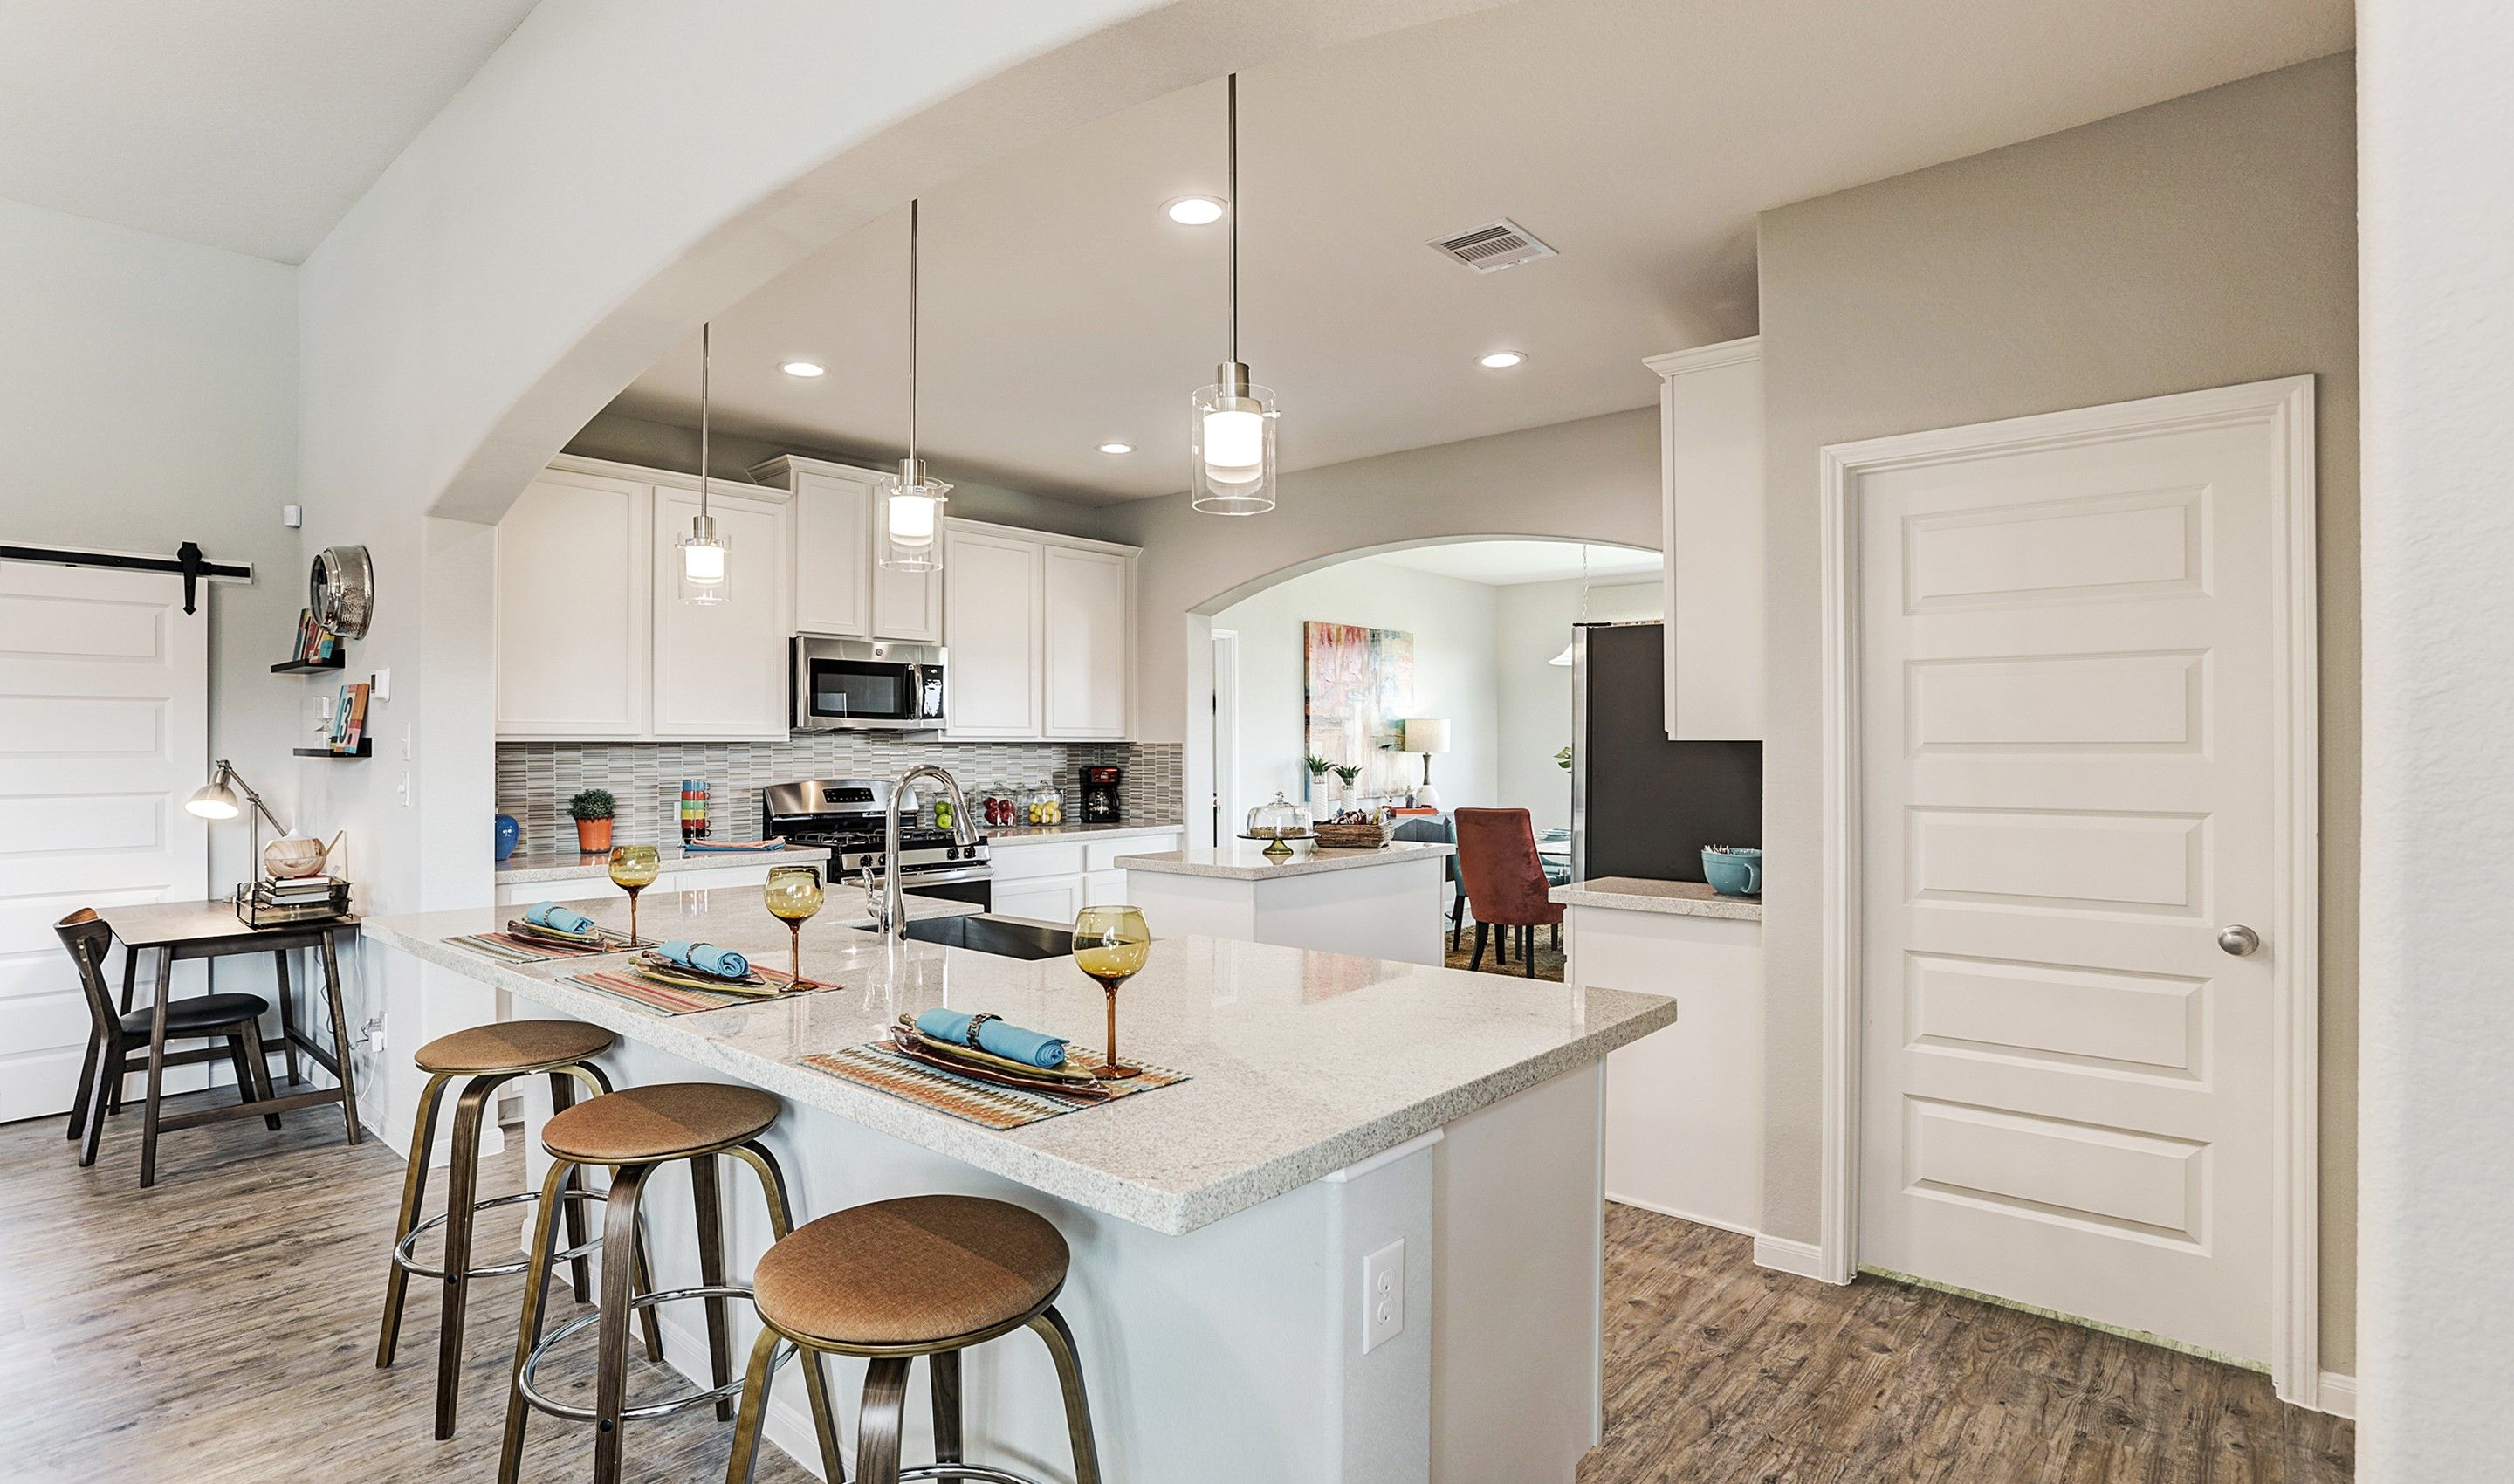 Kitchen featured in the Juniper II By K. Hovnanian® Homes in Brazoria, TX